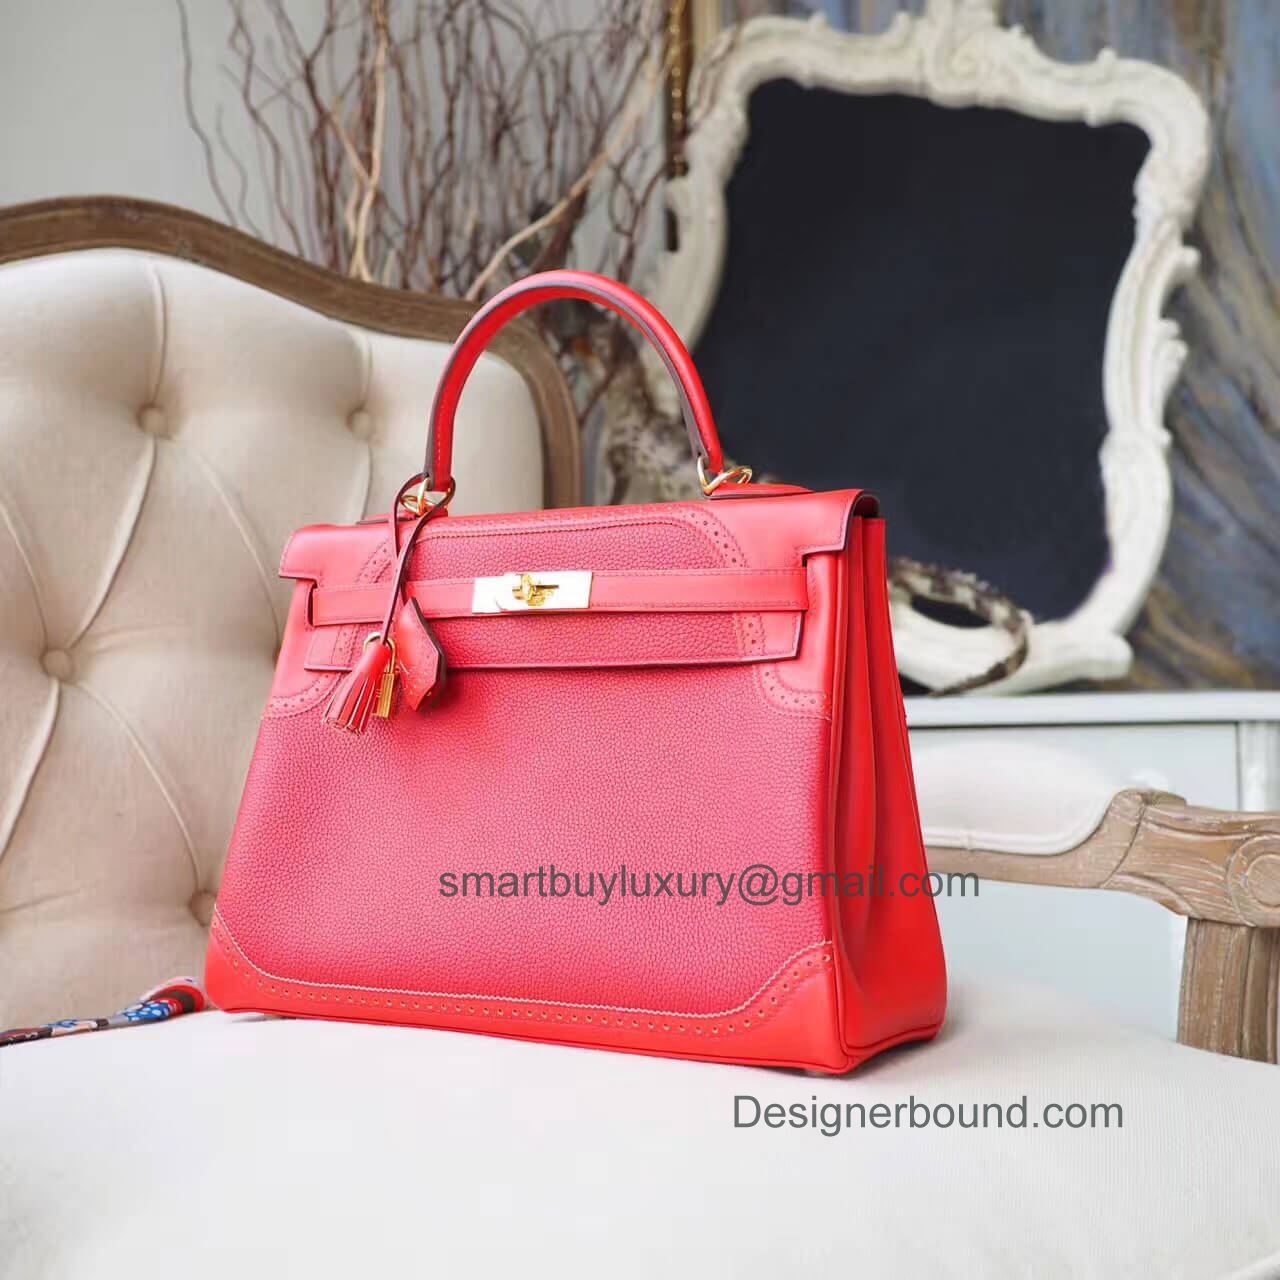 Hermes Kelly 32 Bag Ghillies in s5 Rouge Tomate Togo PHW